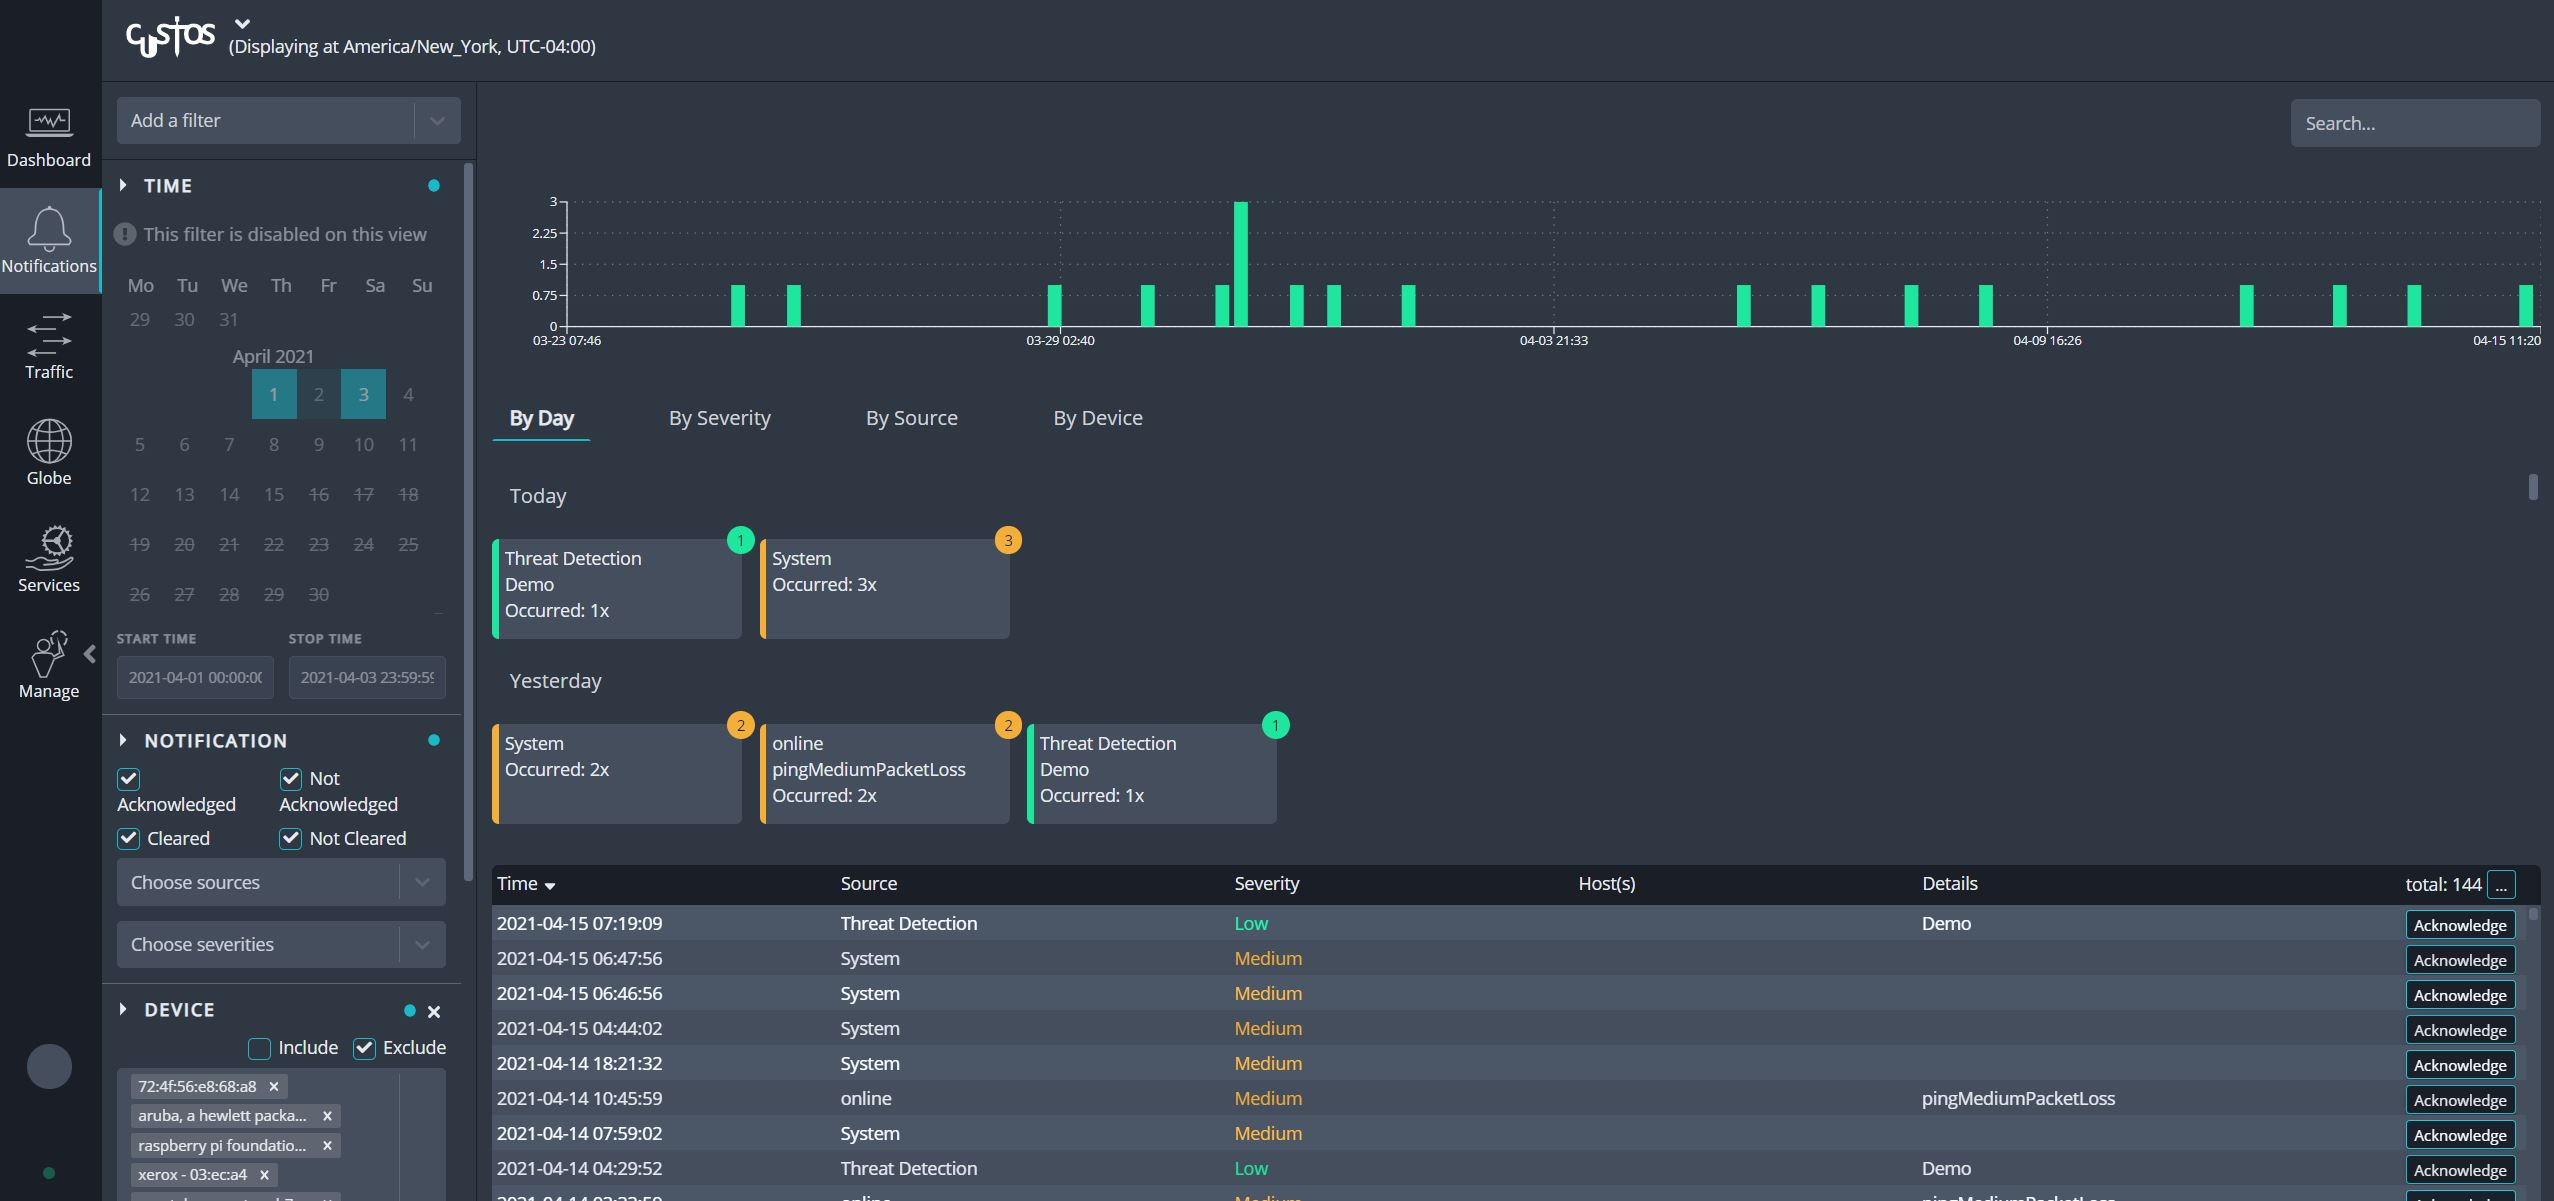 Cubros Threat Detection of Custos Software